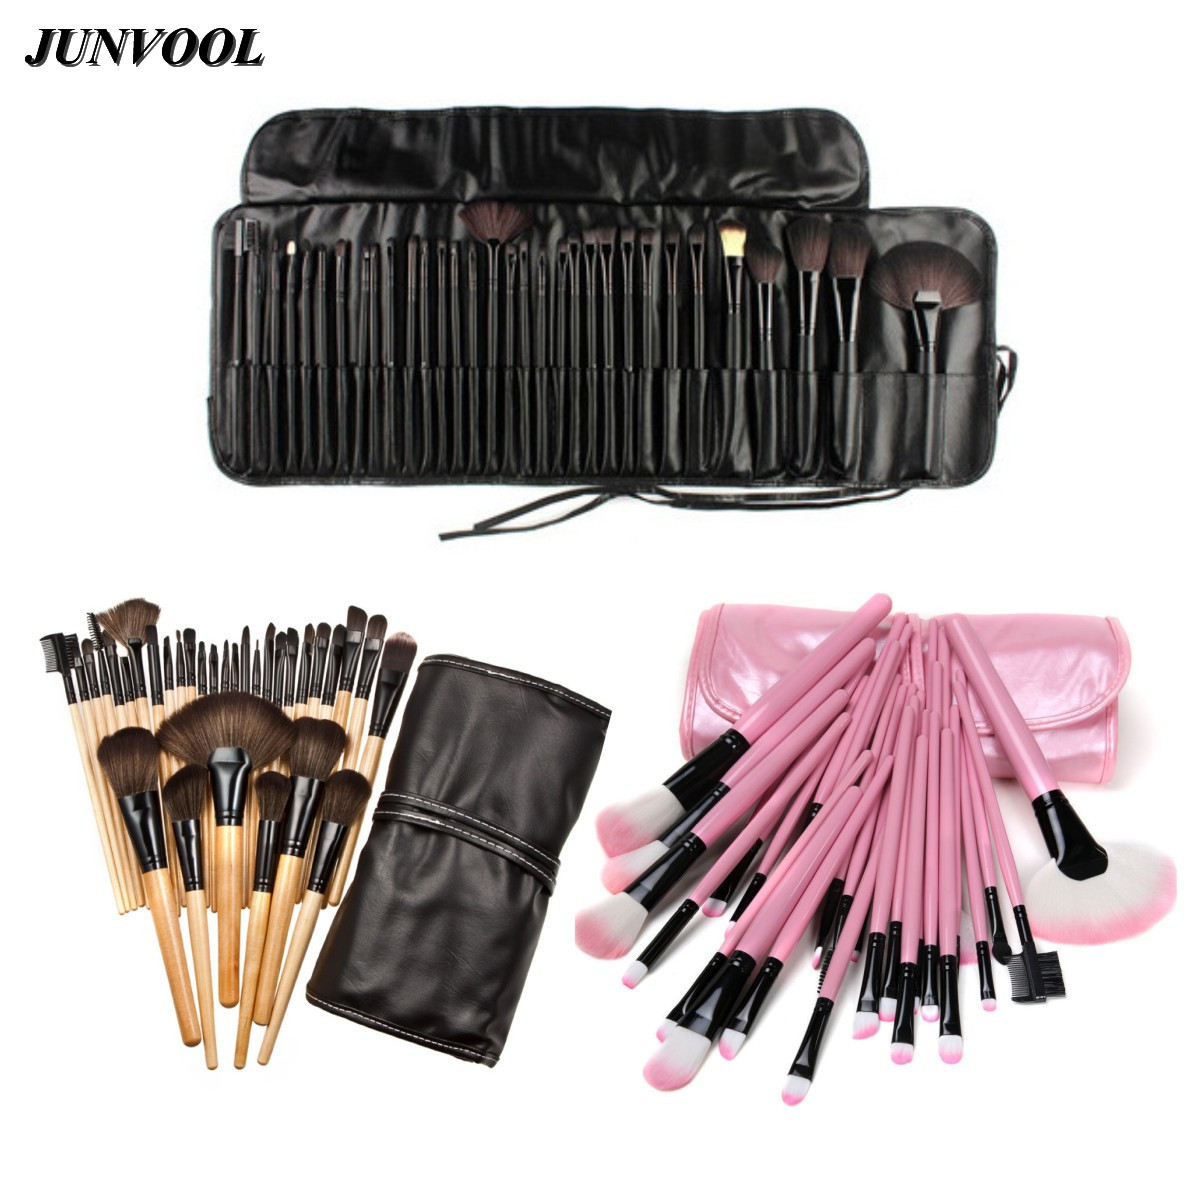 32pcs Mini Pro Makeup Brushes Set&Ke Soft Synthetic Hair Make Up Tools Cosmetic Beauty Pink Wood Black Brush+ 1 Leather Bag Case new makeup 15 pcs soft synthetic hair make up tools kit cosmetic beauty makeup brush set case free shipping